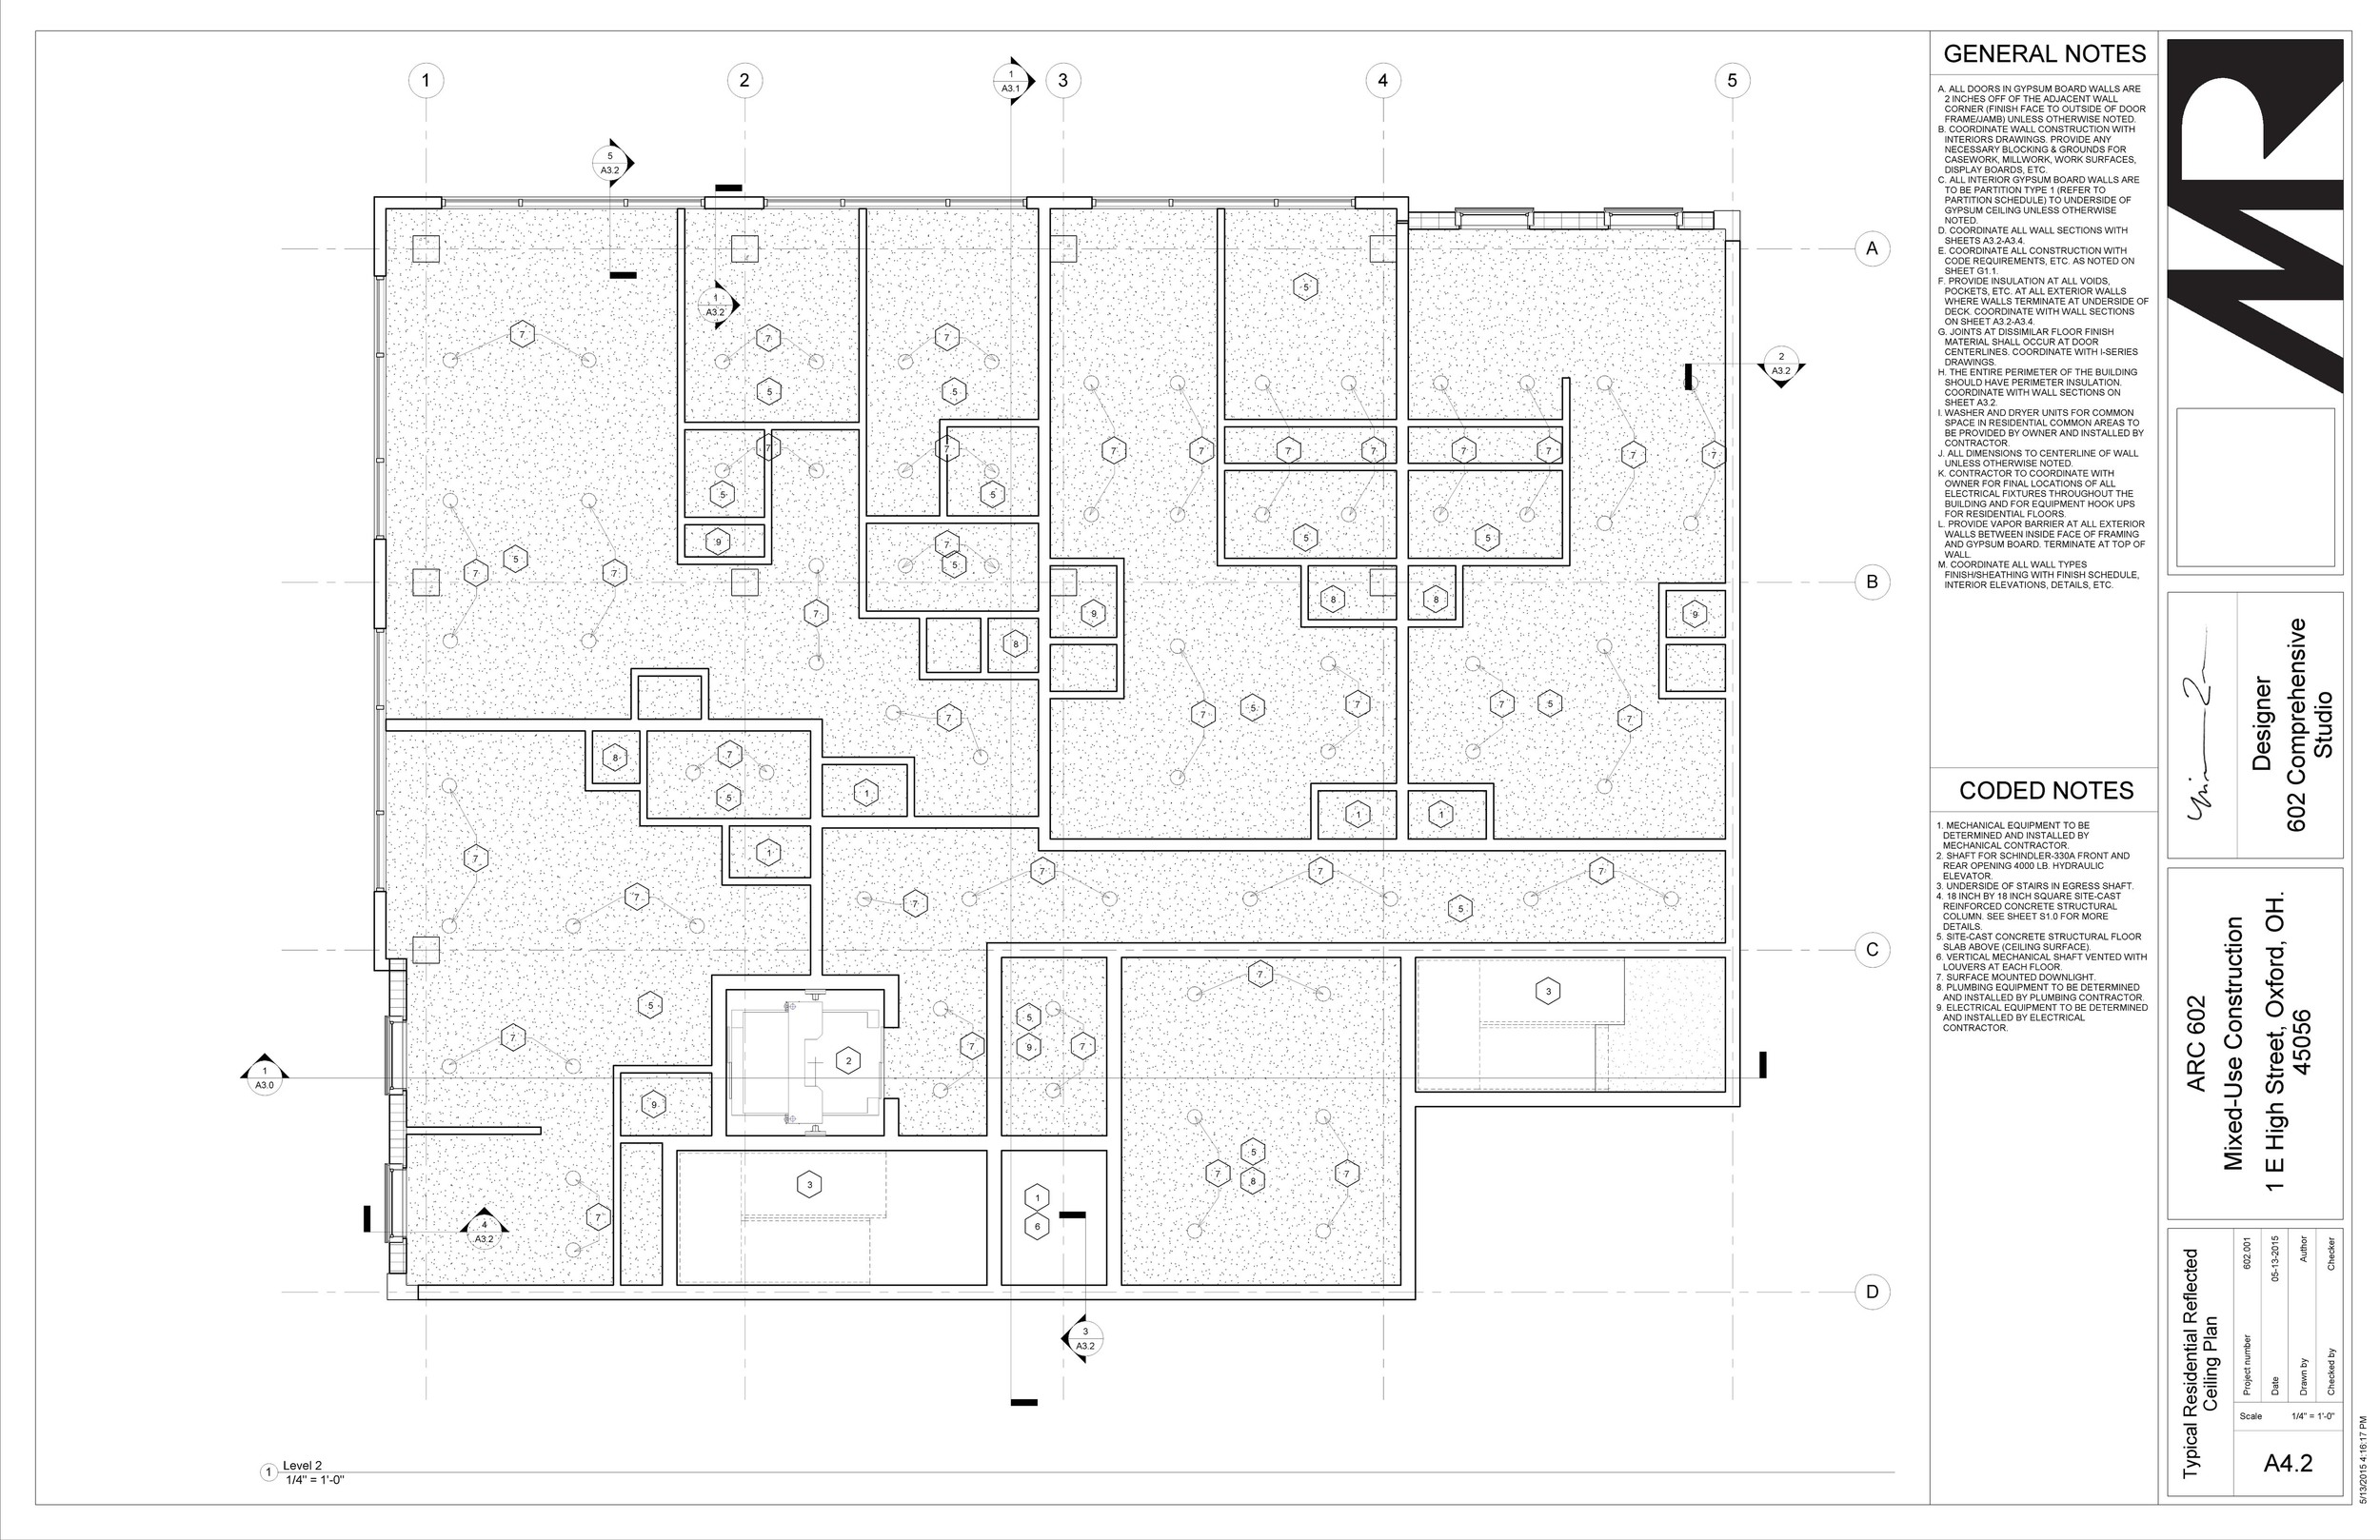 602 Studio - Sheet - A4-2 - Typical Residential Reflected Ceiling Plan.jpg